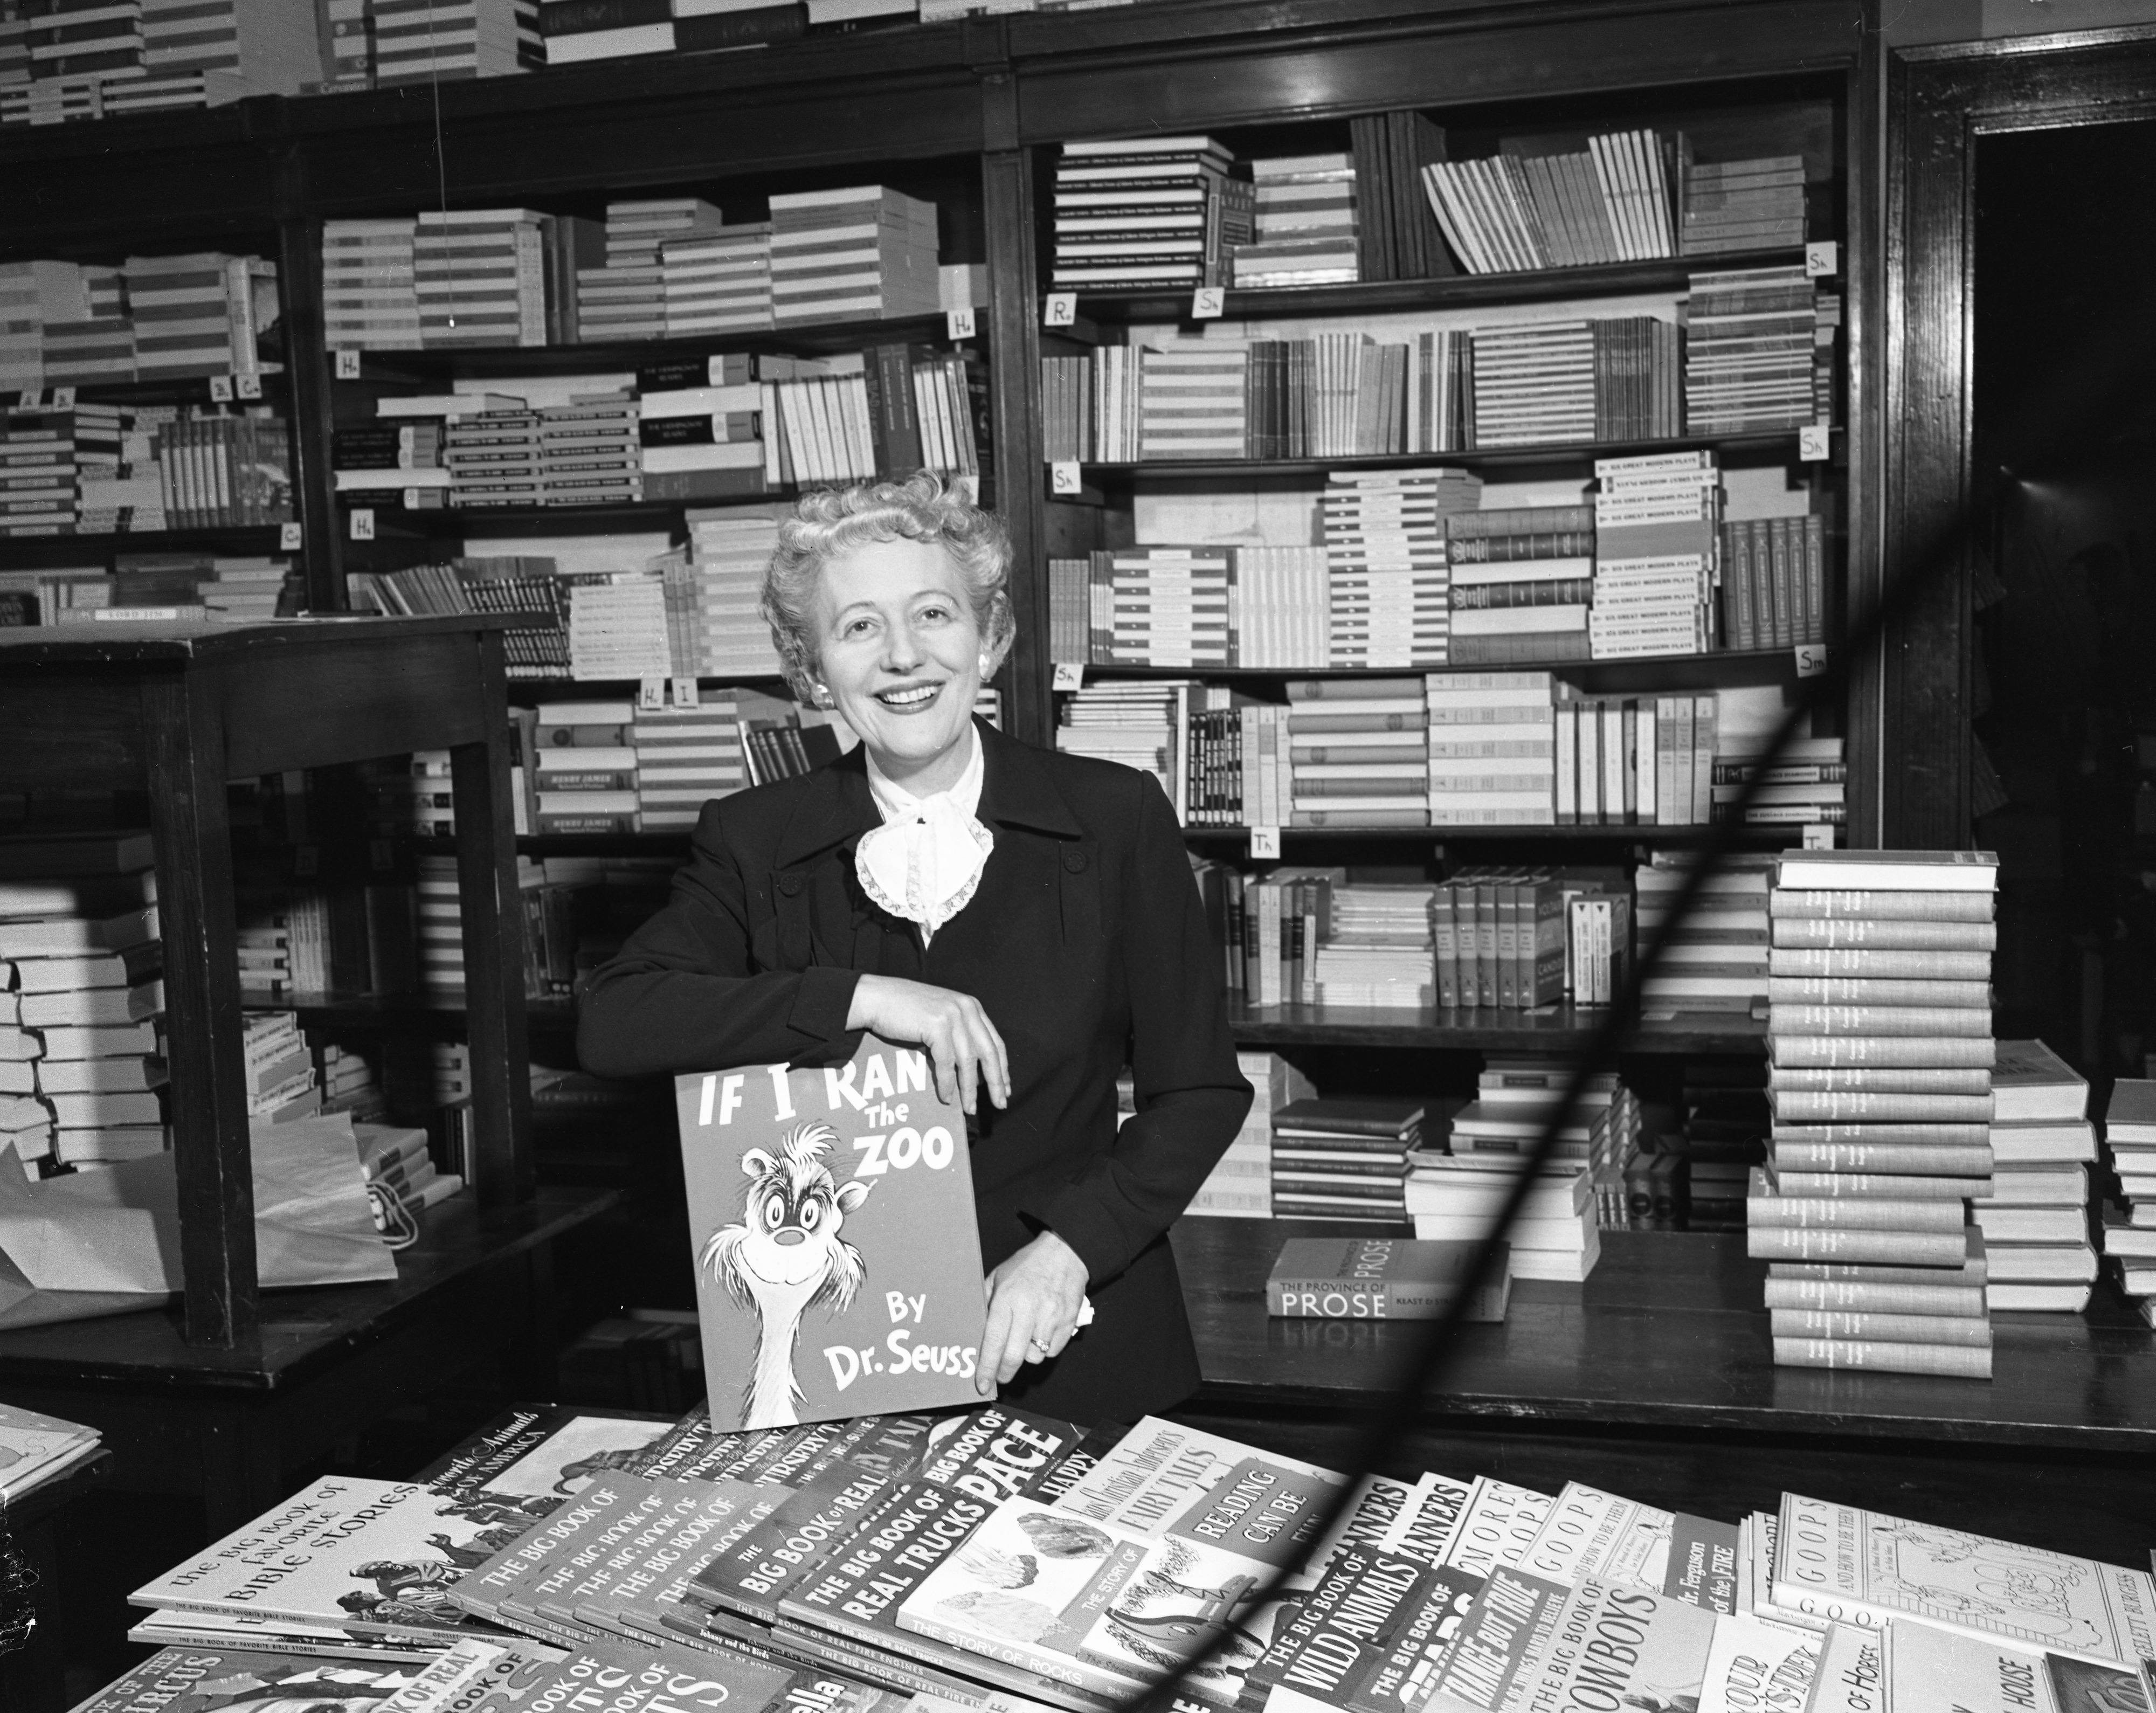 Florence Slater, Owner of Slater's Book Store In Nickels Arcade, February 1957 image